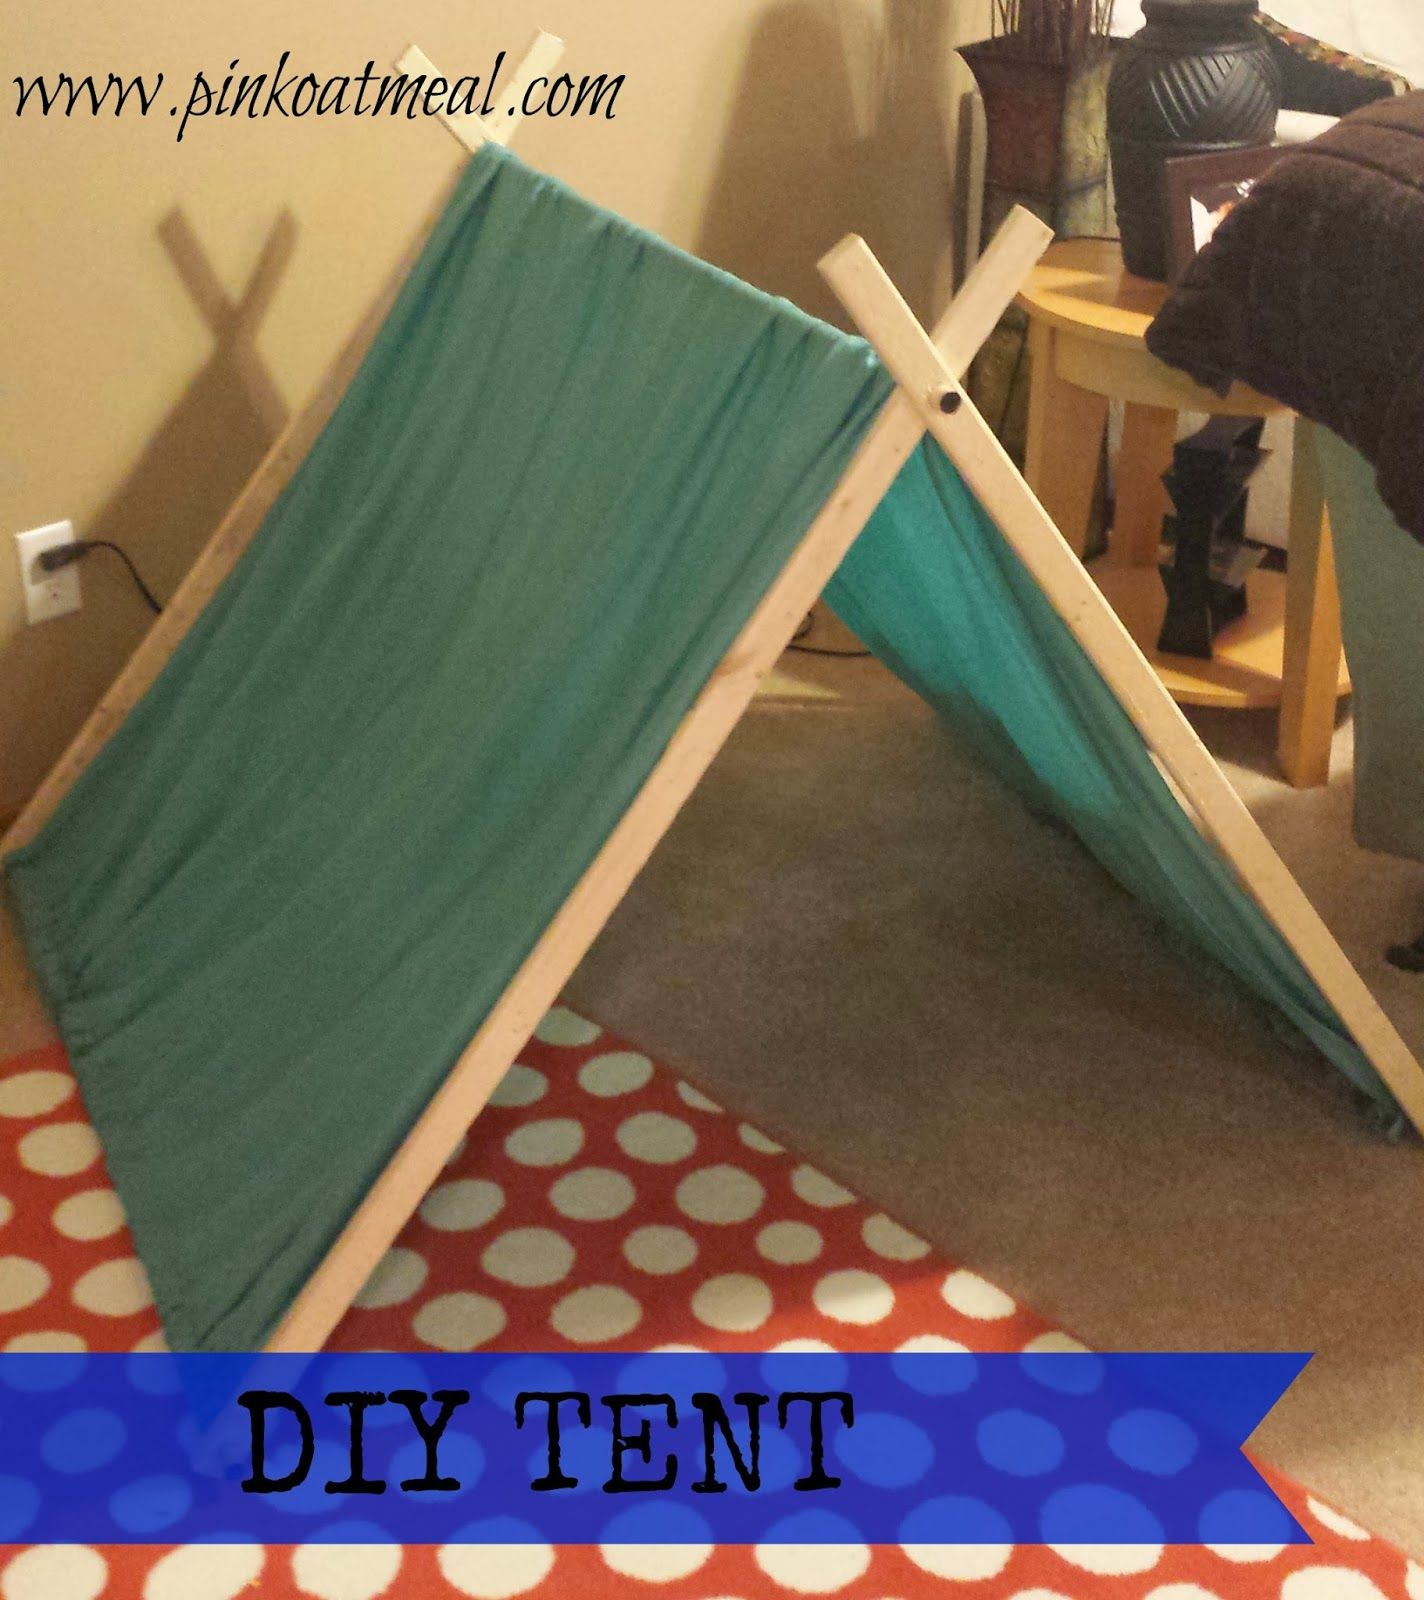 Diy Tent Super Easy This Would Be Great For A